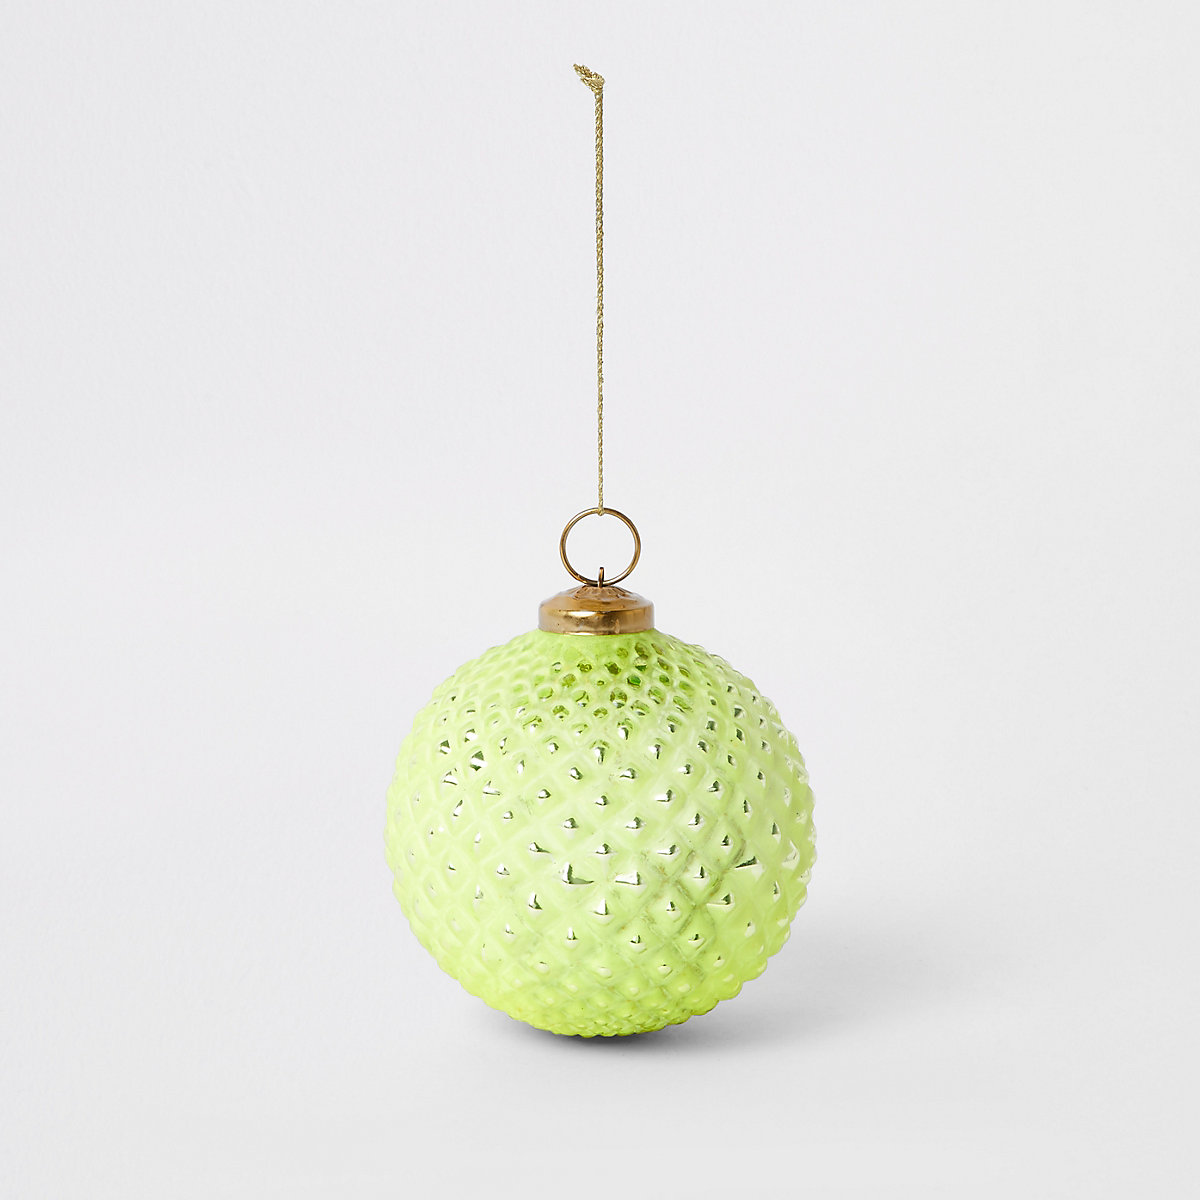 Large bright green metallic bauble